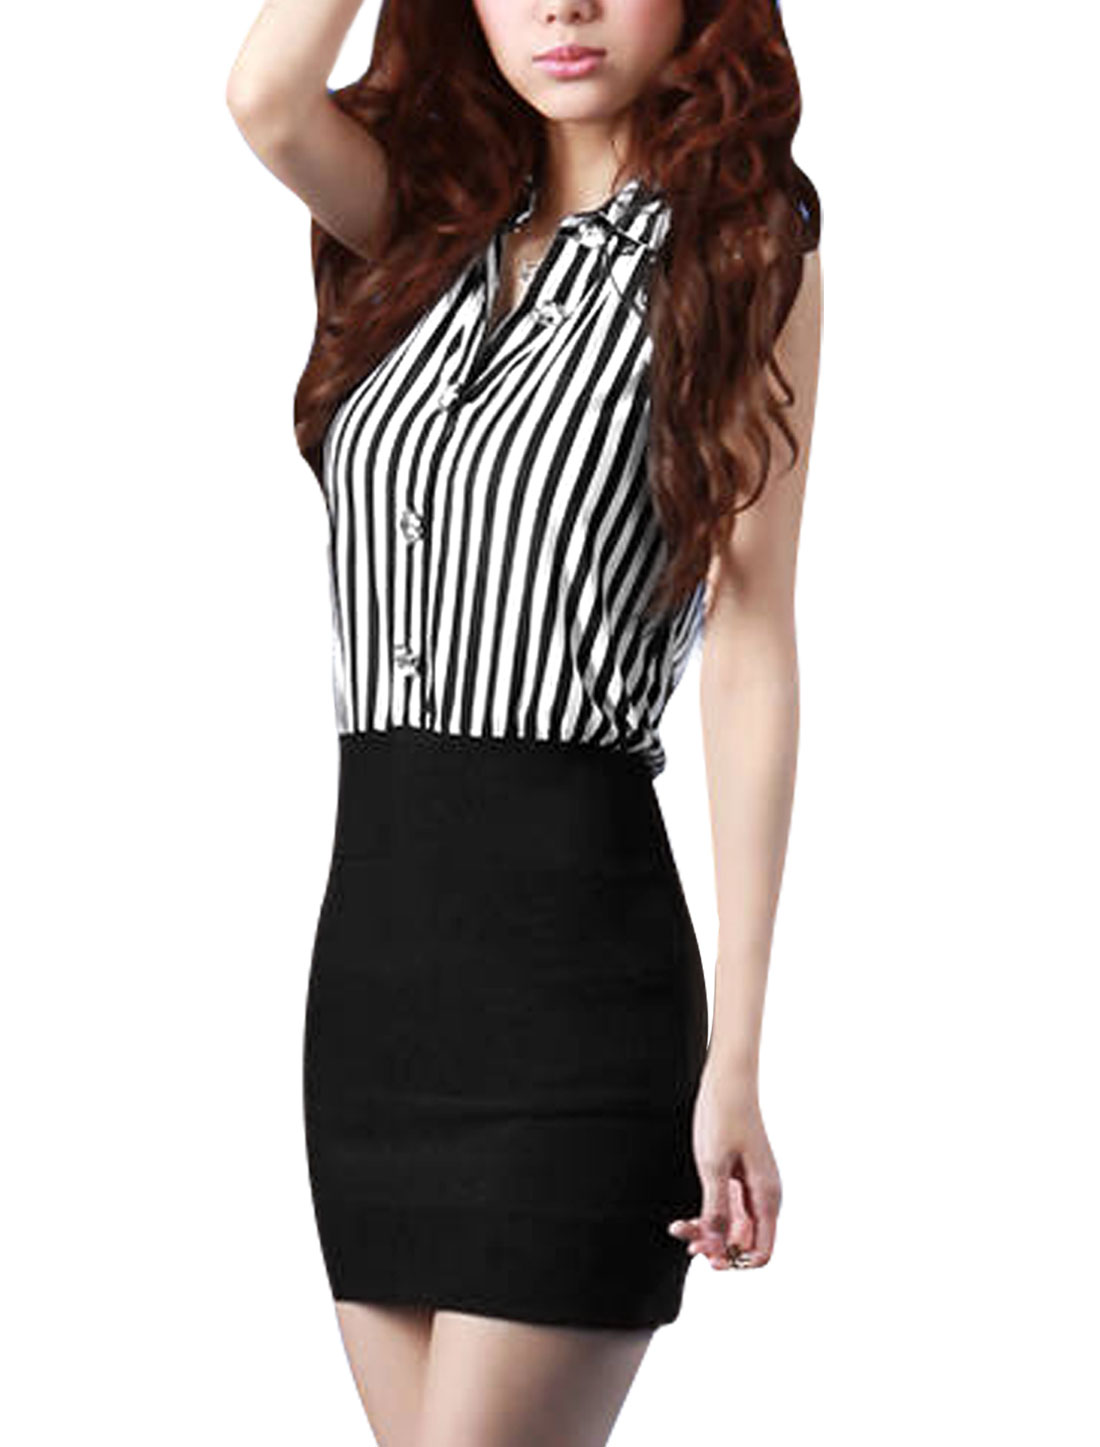 Lady Black White Point Collar Sleeveless Vertical Stripes Splice Mini Dress XS